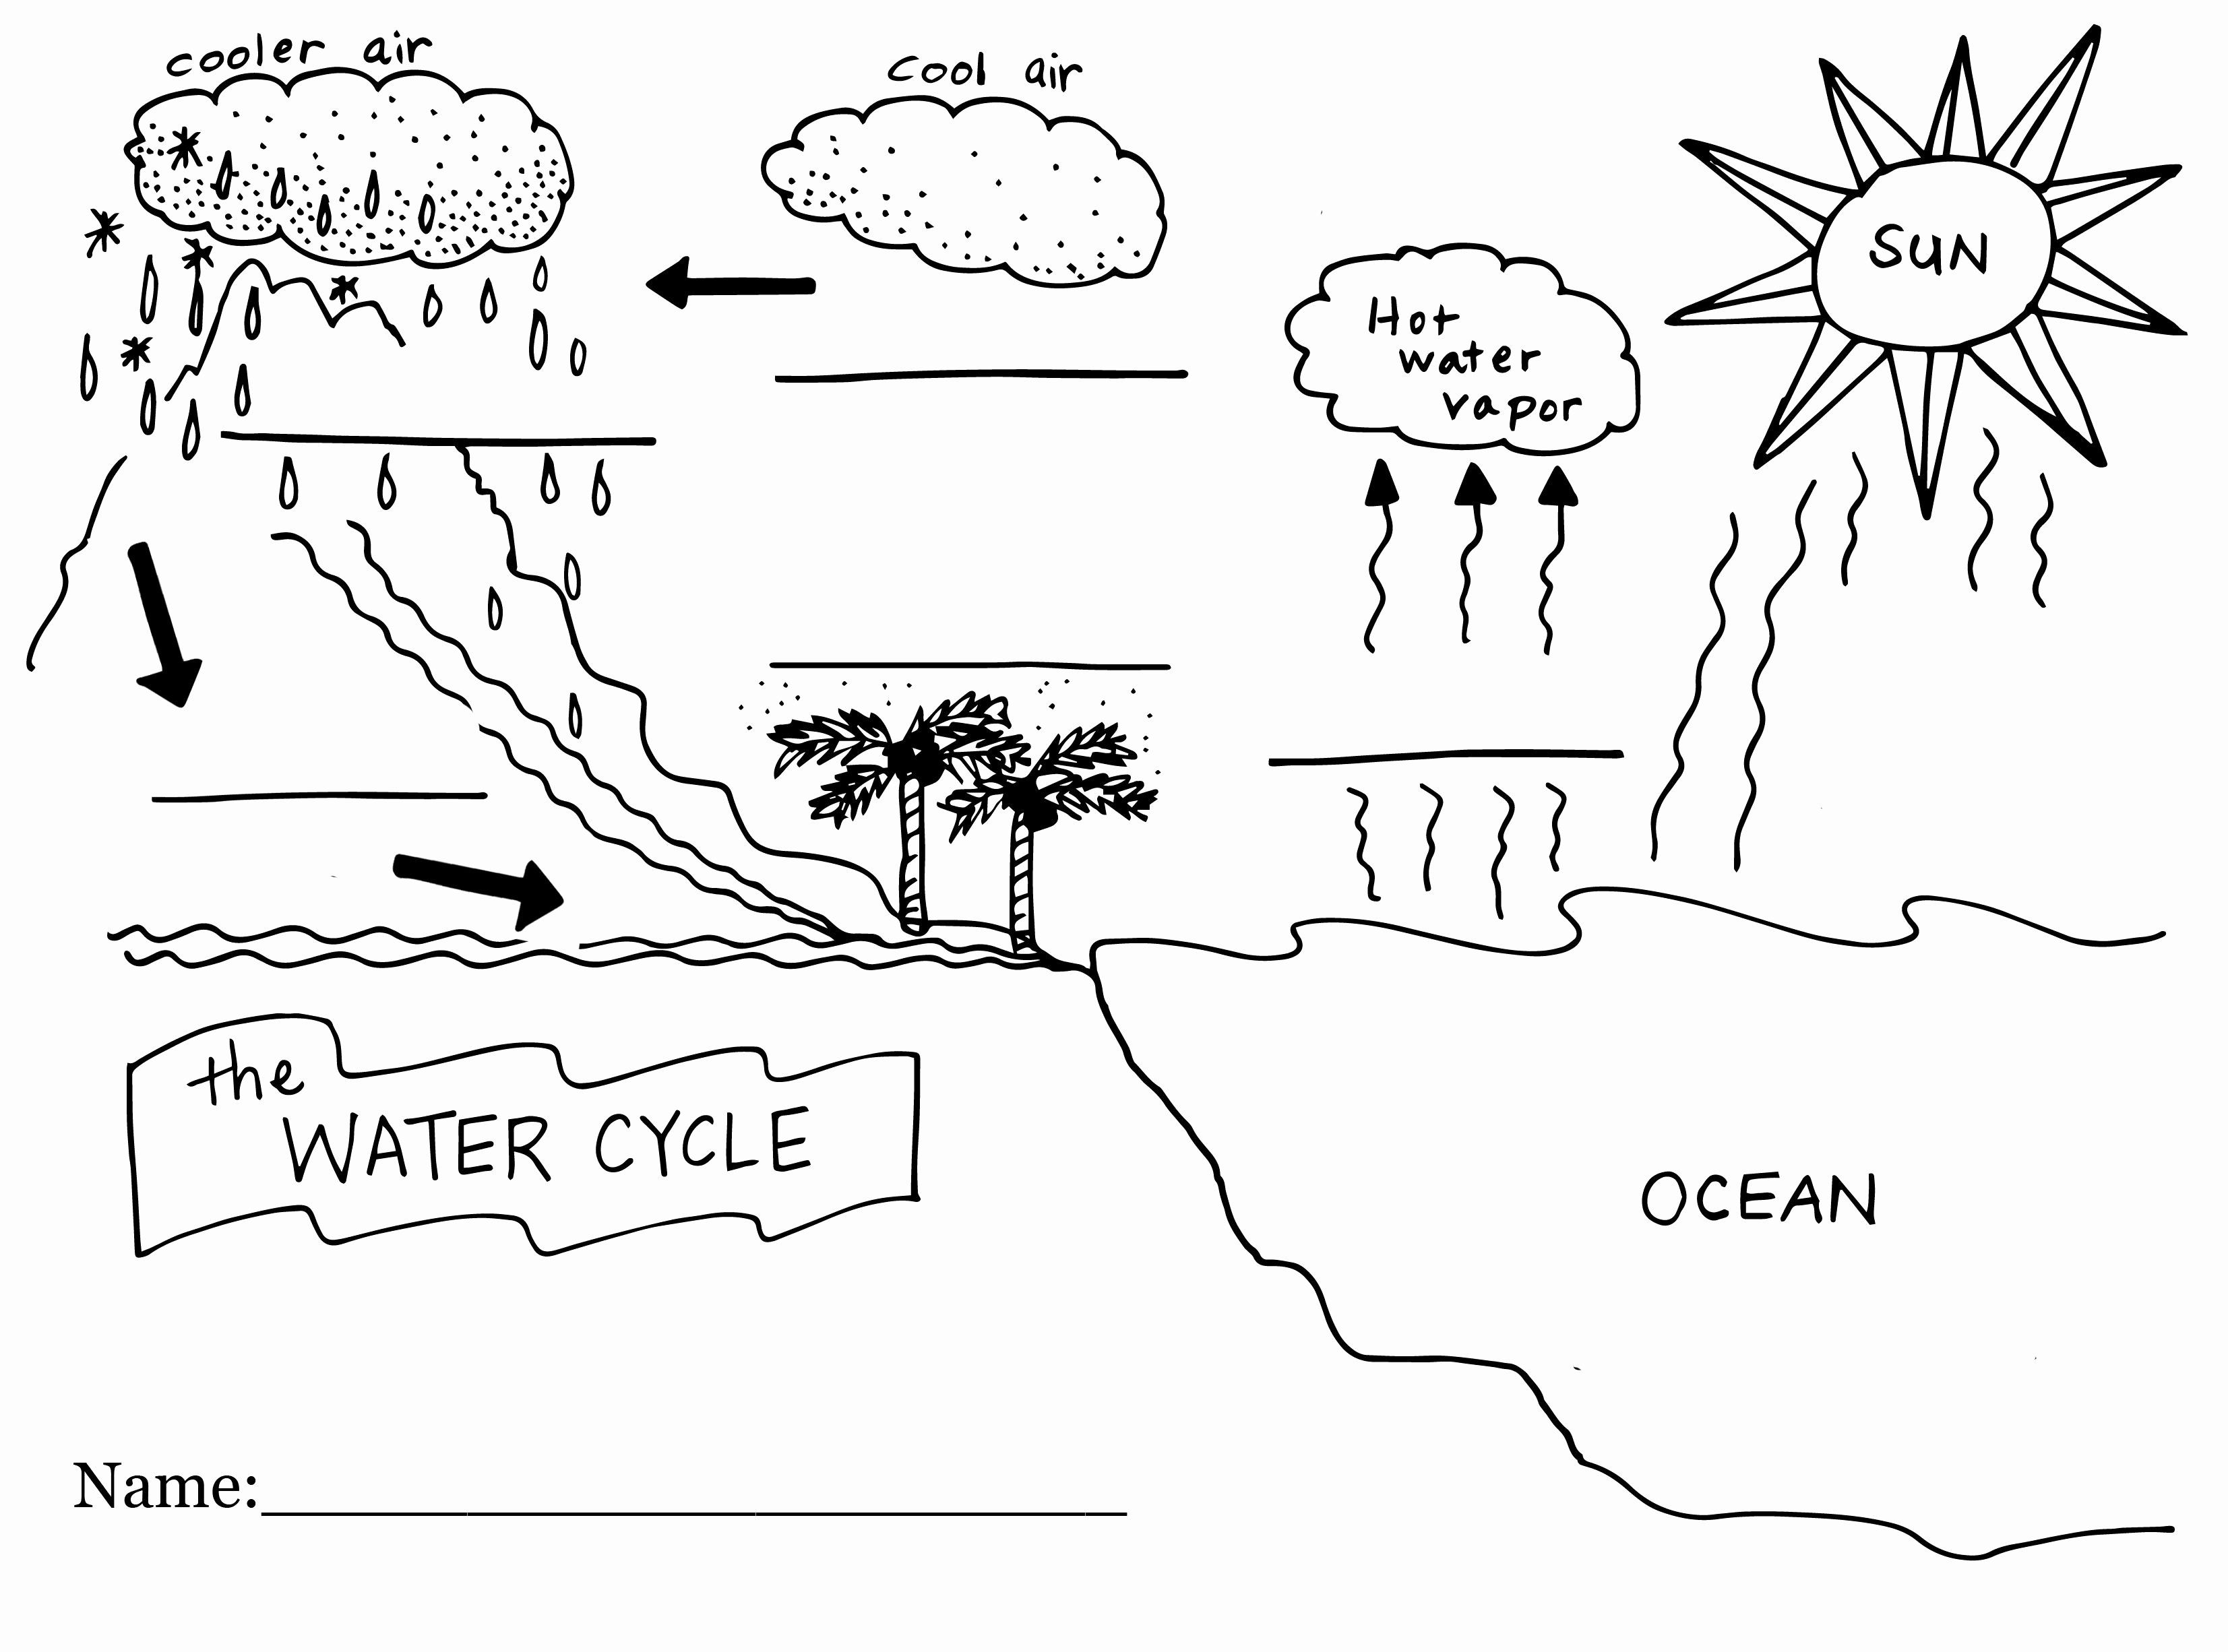 Water Cycle Coloring Page New Water Cycle Coloring Pages Cd357